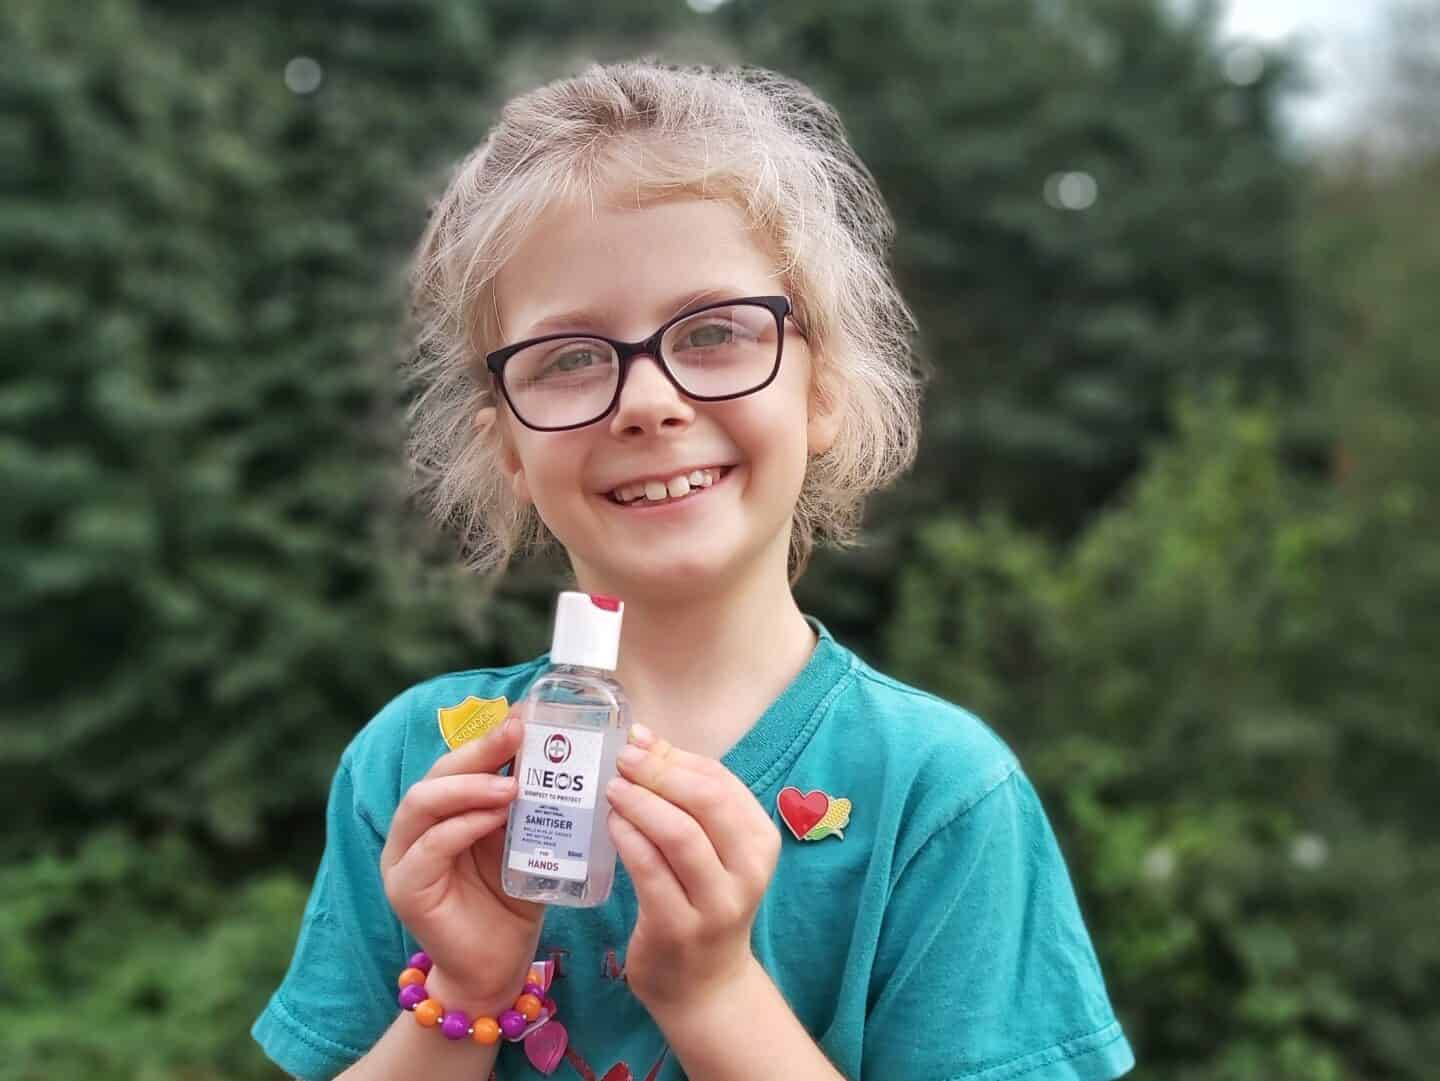 Girl holding miniature bottle of Ineos Hygienics hand sanitiser. Blurred background of trees.